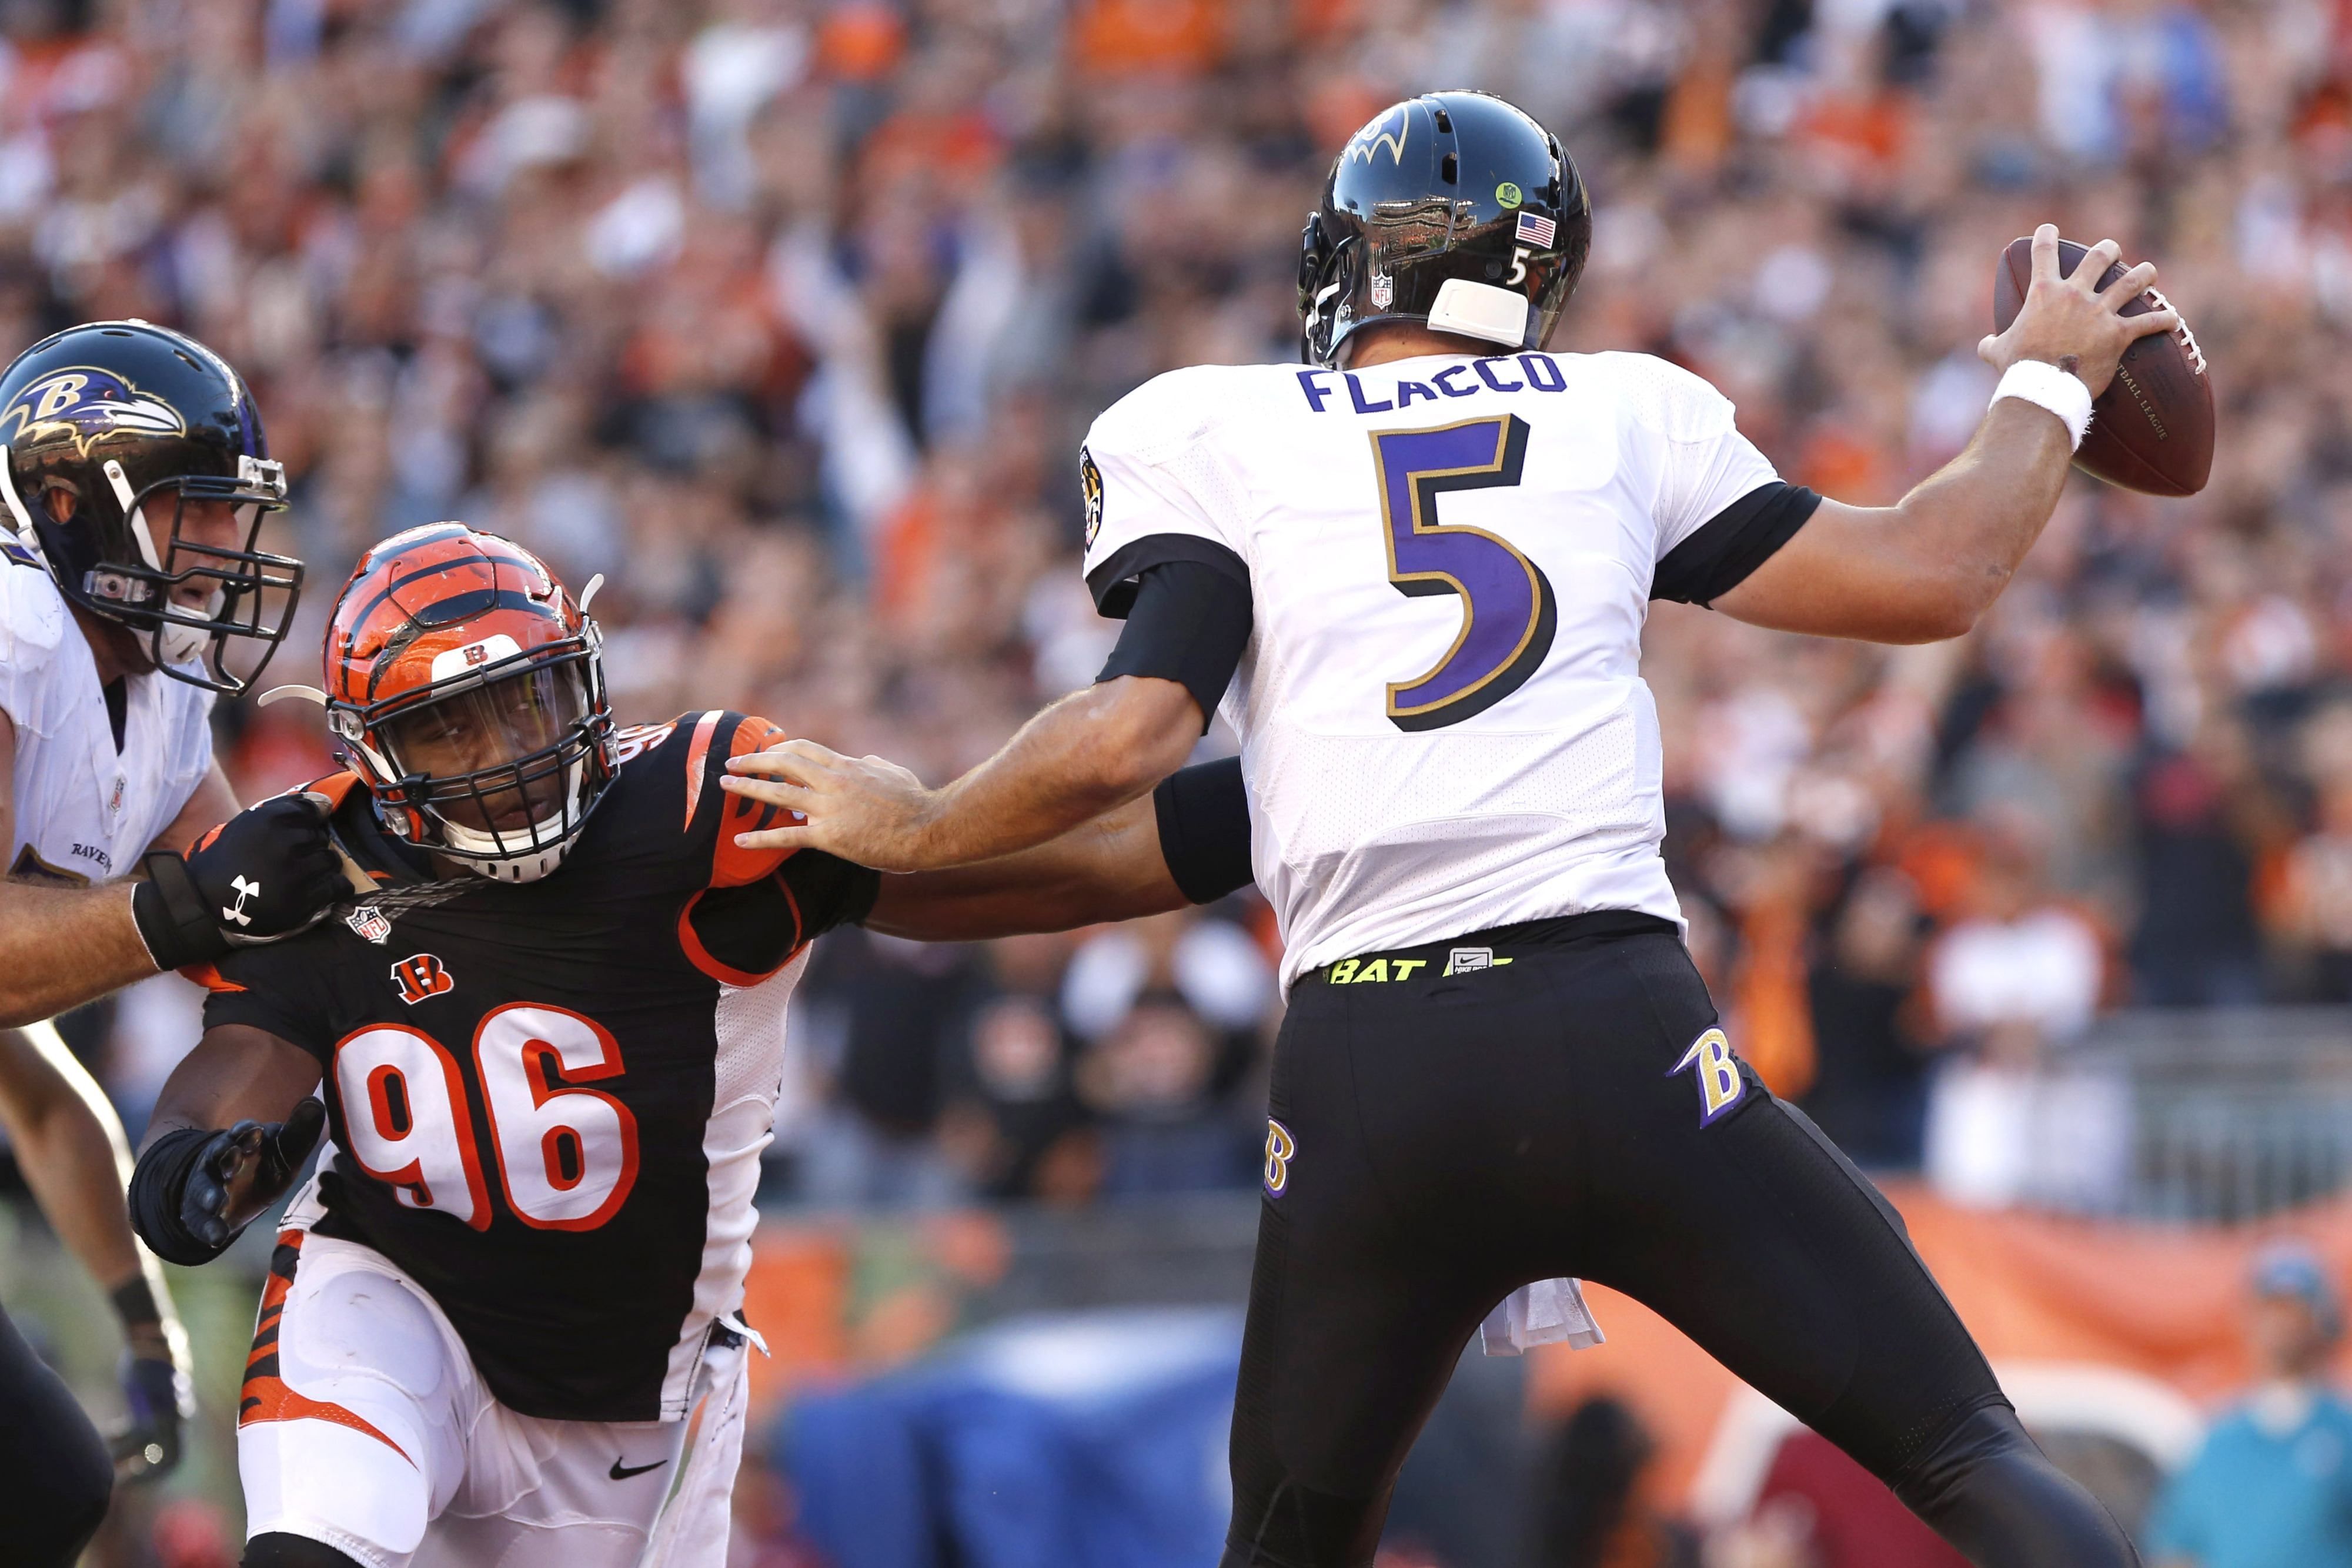 NFL standings, Week 9: AFC North features closest playoff race but all divisions competitive